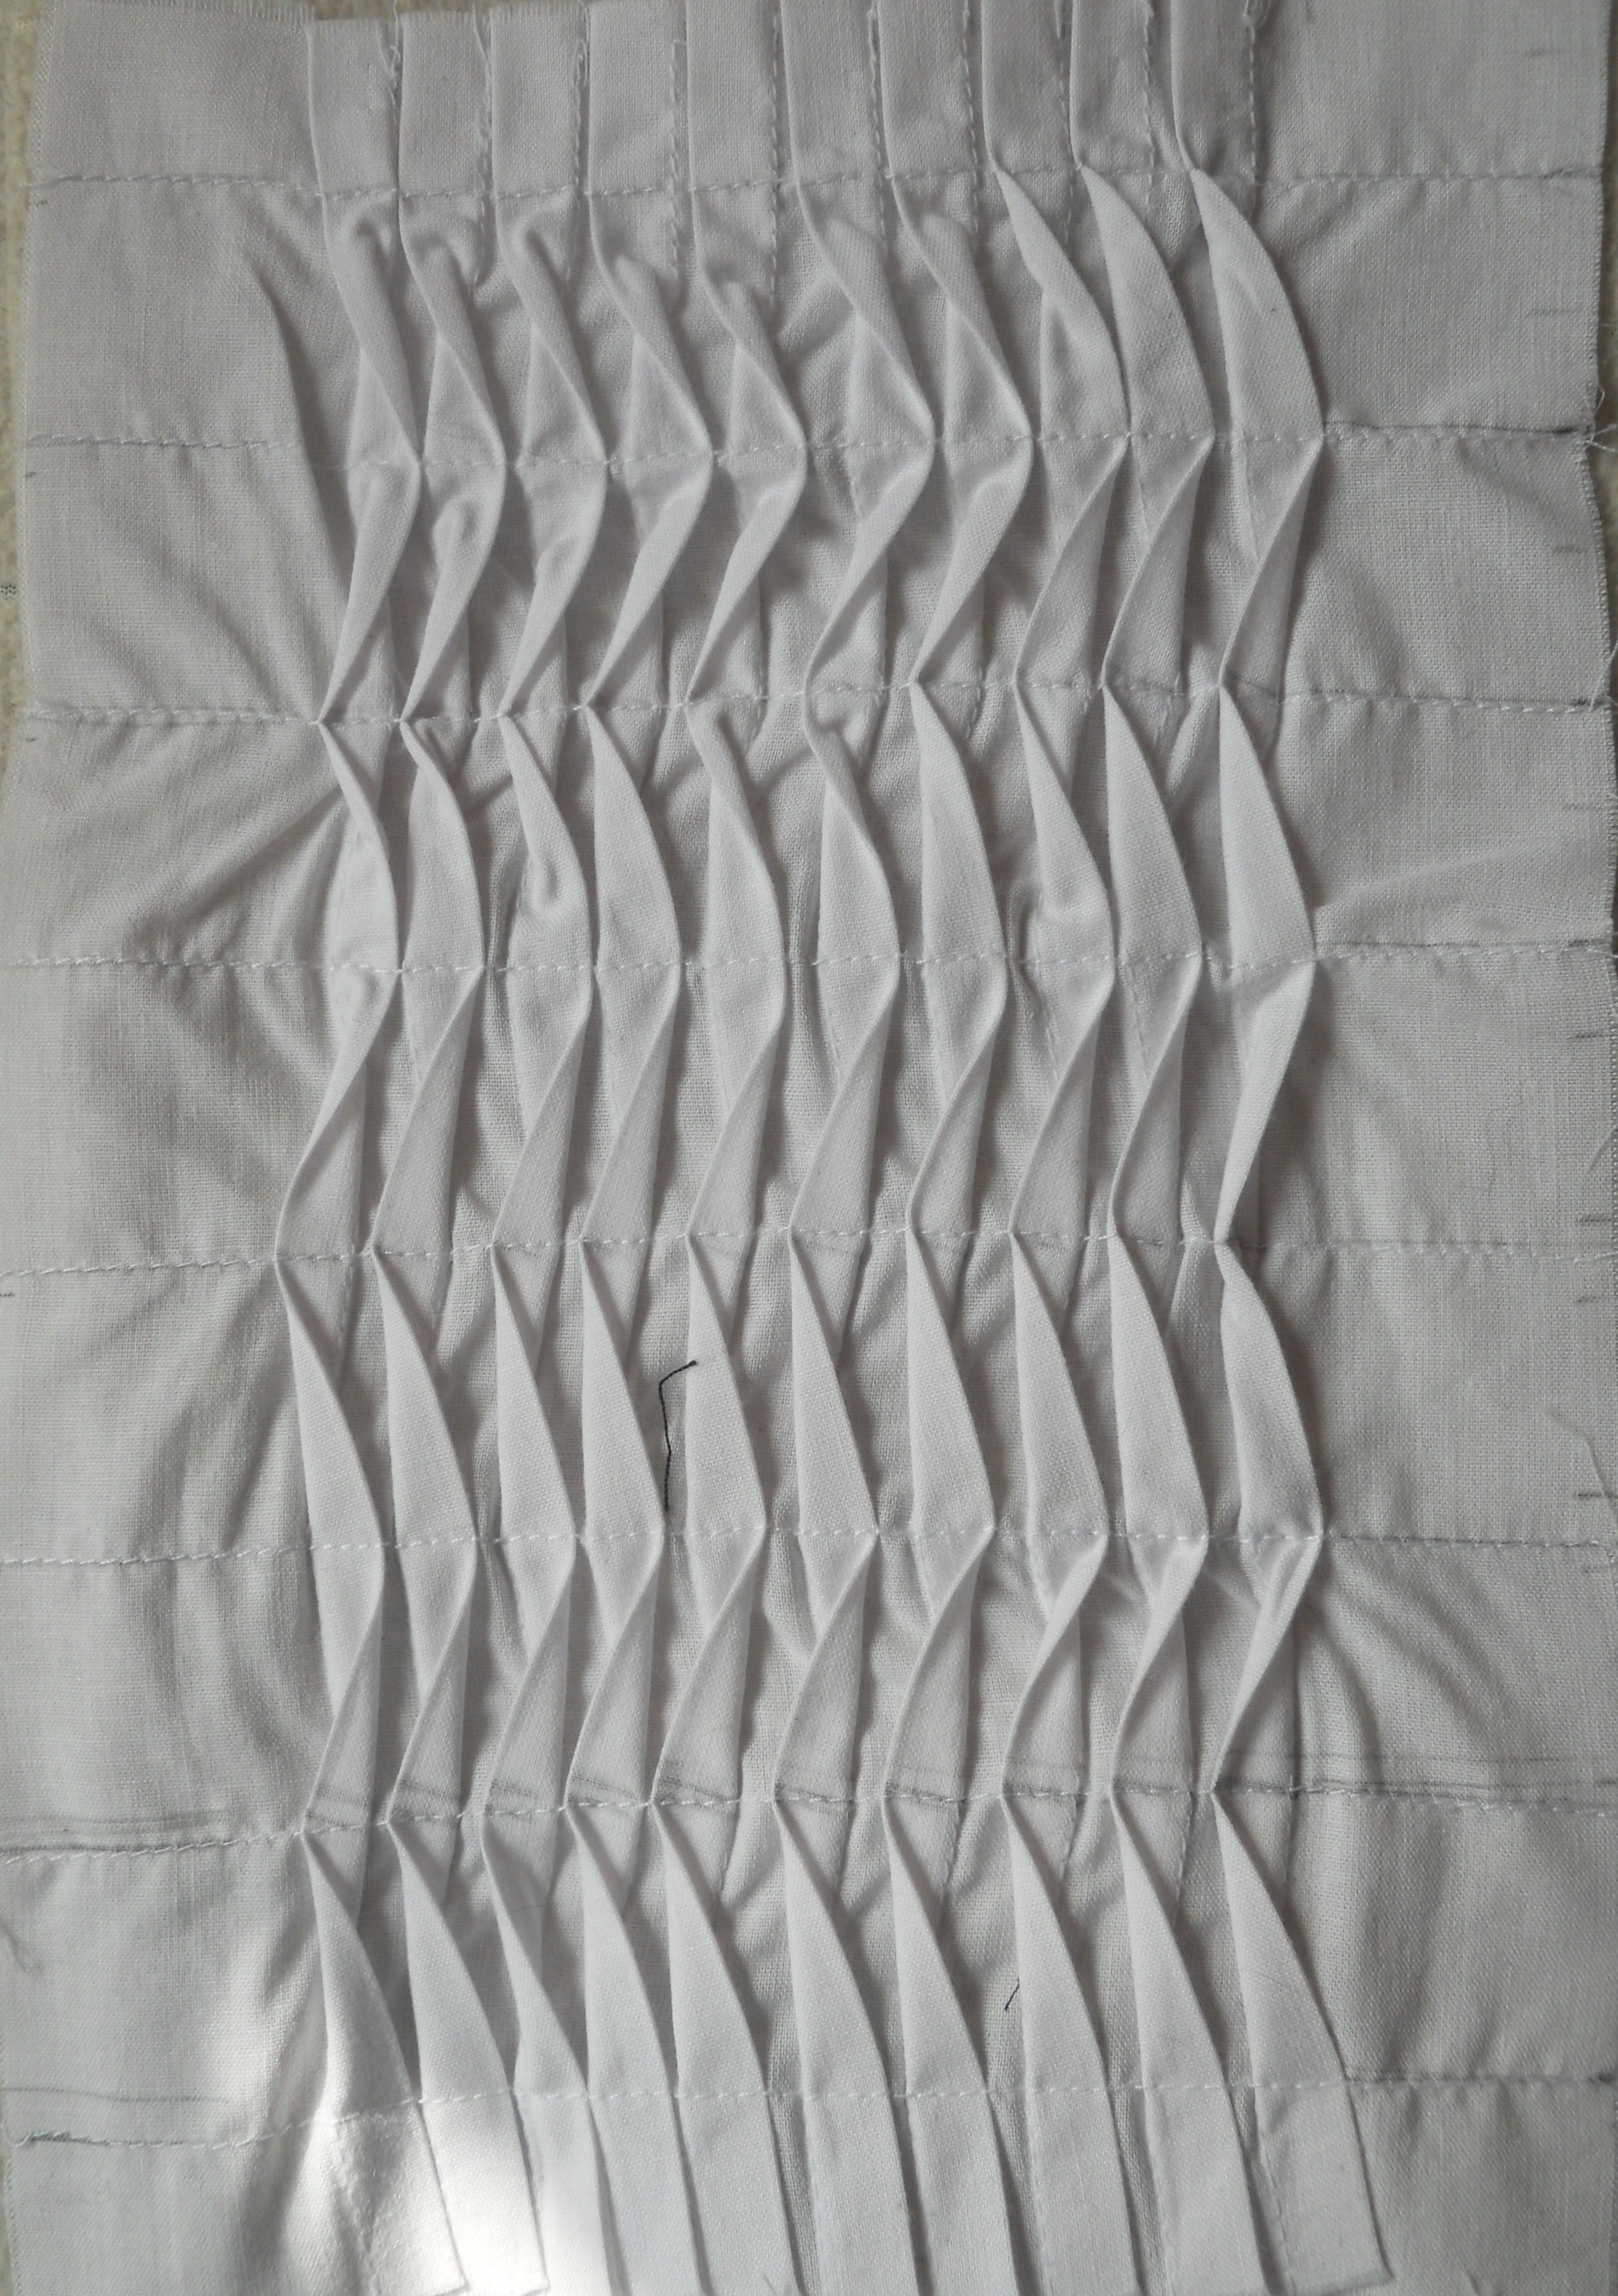 comment below and repin this fabric manipulation - undulating tucks